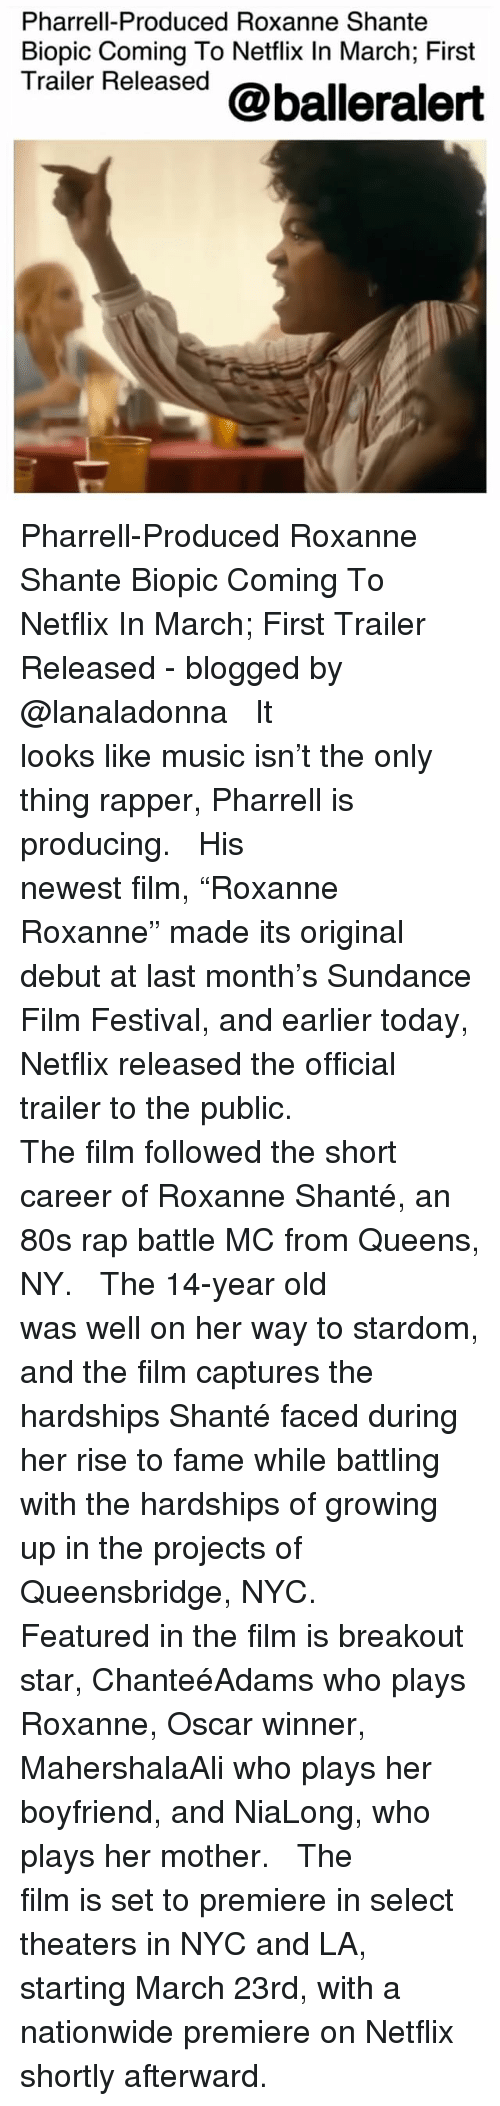 """80s, Growing Up, and Memes: Pharrell-Produced Roxanne Shante  Biopic Coming To Netflix In March; First  Trailer Released @balleralert Pharrell-Produced Roxanne Shante Biopic Coming To Netflix In March; First Trailer Released - blogged by @lanaladonna ⠀⠀⠀⠀⠀⠀⠀ ⠀⠀⠀⠀⠀⠀⠀ It looks like music isn't the only thing rapper, Pharrell is producing. ⠀⠀⠀⠀⠀⠀⠀ ⠀⠀⠀⠀⠀⠀⠀ His newest film, """"Roxanne Roxanne"""" made its original debut at last month's Sundance Film Festival, and earlier today, Netflix released the official trailer to the public. ⠀⠀⠀⠀⠀⠀⠀ ⠀⠀⠀⠀⠀⠀⠀ The film followed the short career of Roxanne Shanté, an 80s rap battle MC from Queens, NY. ⠀⠀⠀⠀⠀⠀⠀ ⠀⠀⠀⠀⠀⠀⠀ The 14-year old was well on her way to stardom, and the film captures the hardships Shanté faced during her rise to fame while battling with the hardships of growing up in the projects of Queensbridge, NYC. ⠀⠀⠀⠀⠀⠀⠀ ⠀⠀⠀⠀⠀⠀⠀ Featured in the film is breakout star, ChanteéAdams who plays Roxanne, Oscar winner, MahershalaAli who plays her boyfriend, and NiaLong, who plays her mother. ⠀⠀⠀⠀⠀⠀⠀ ⠀⠀⠀⠀⠀⠀⠀ The film is set to premiere in select theaters in NYC and LA, starting March 23rd, with a nationwide premiere on Netflix shortly afterward."""